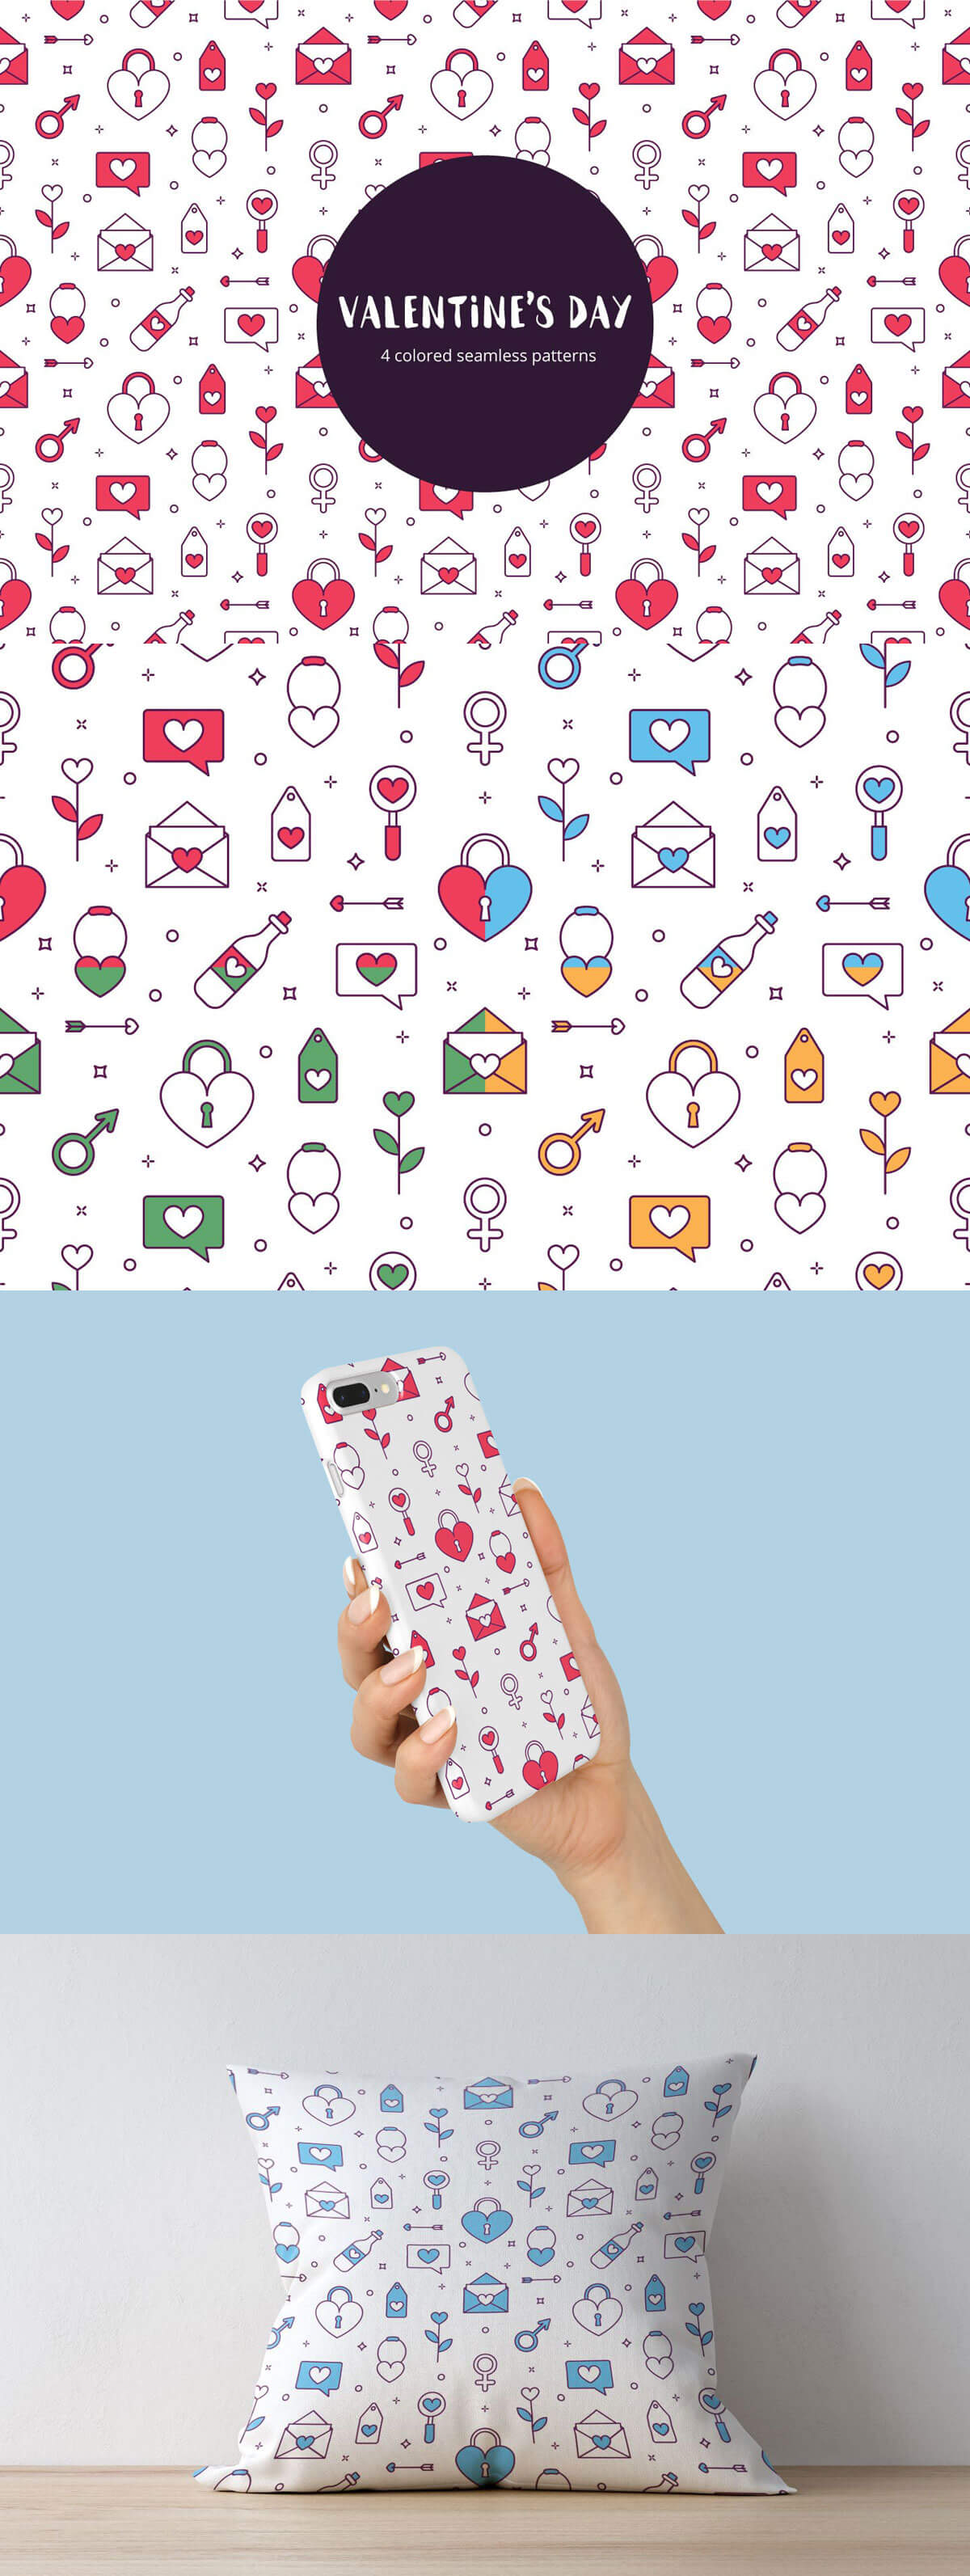 Free Valentines Day Vector Seamless Pattern